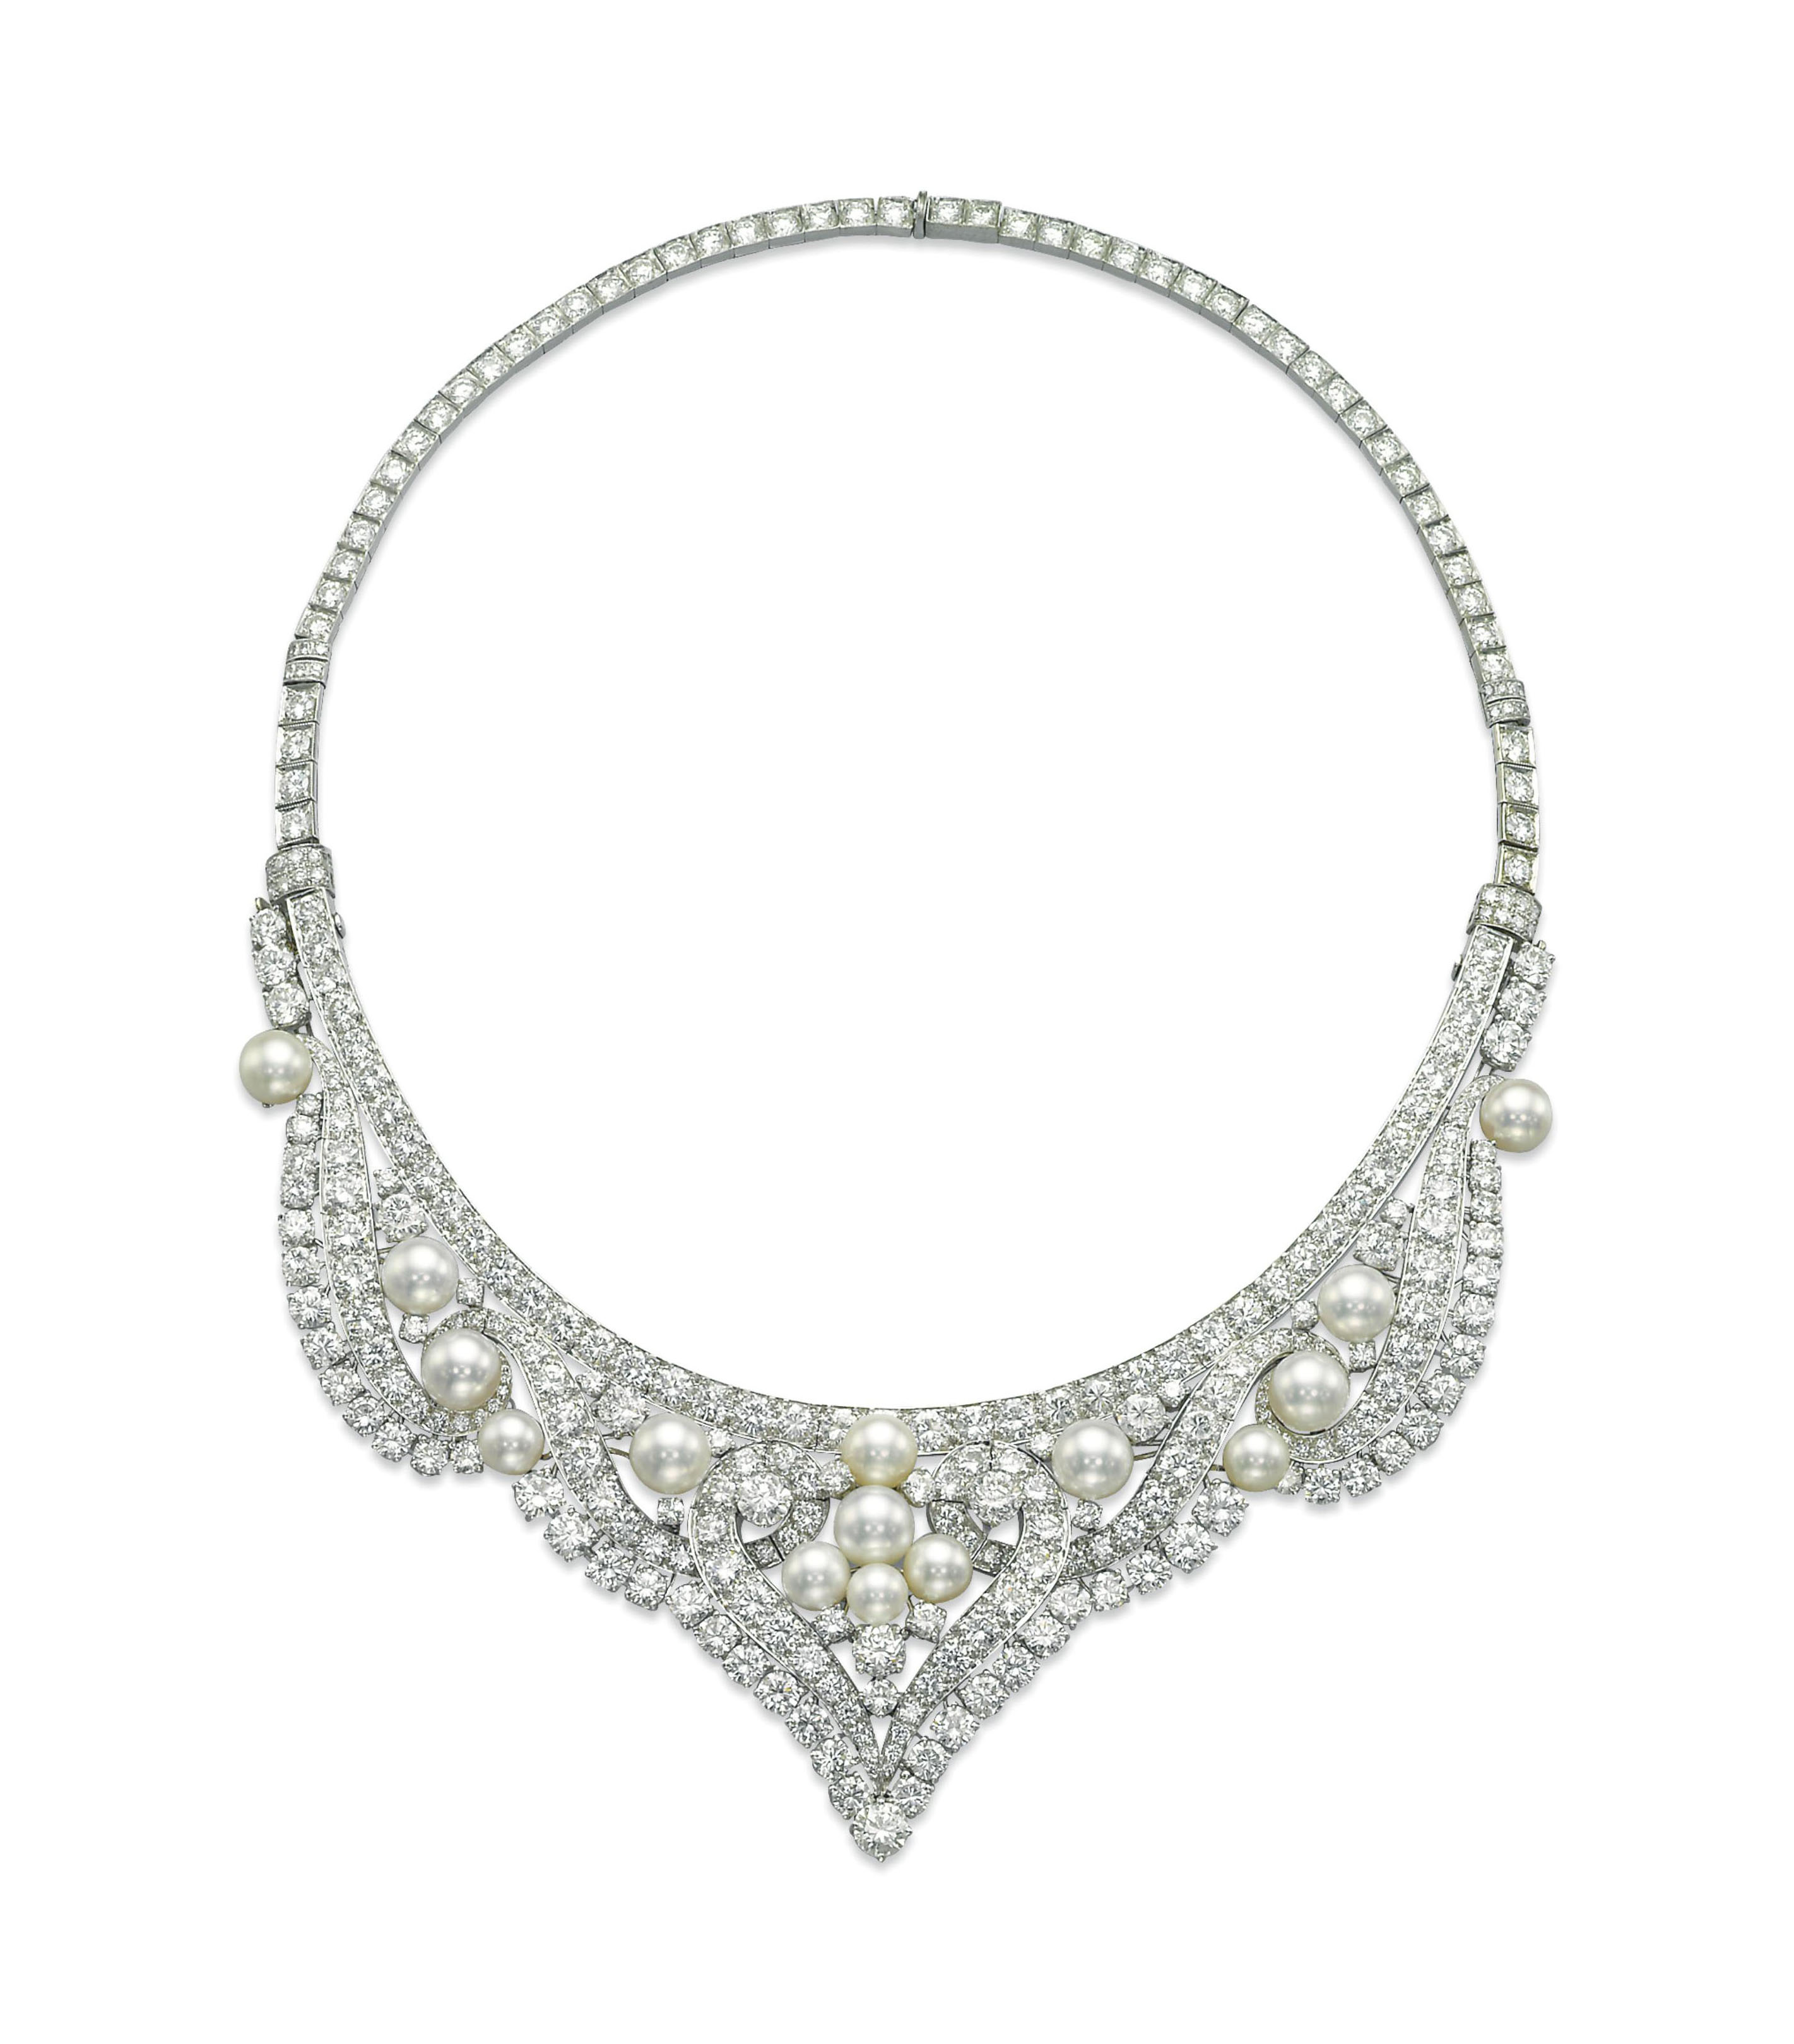 3b97ad778a27b A CULTURED PEARL AND DIAMOND NECKLACE/TIARA, BY DAVID WEBB | Jewelry ...